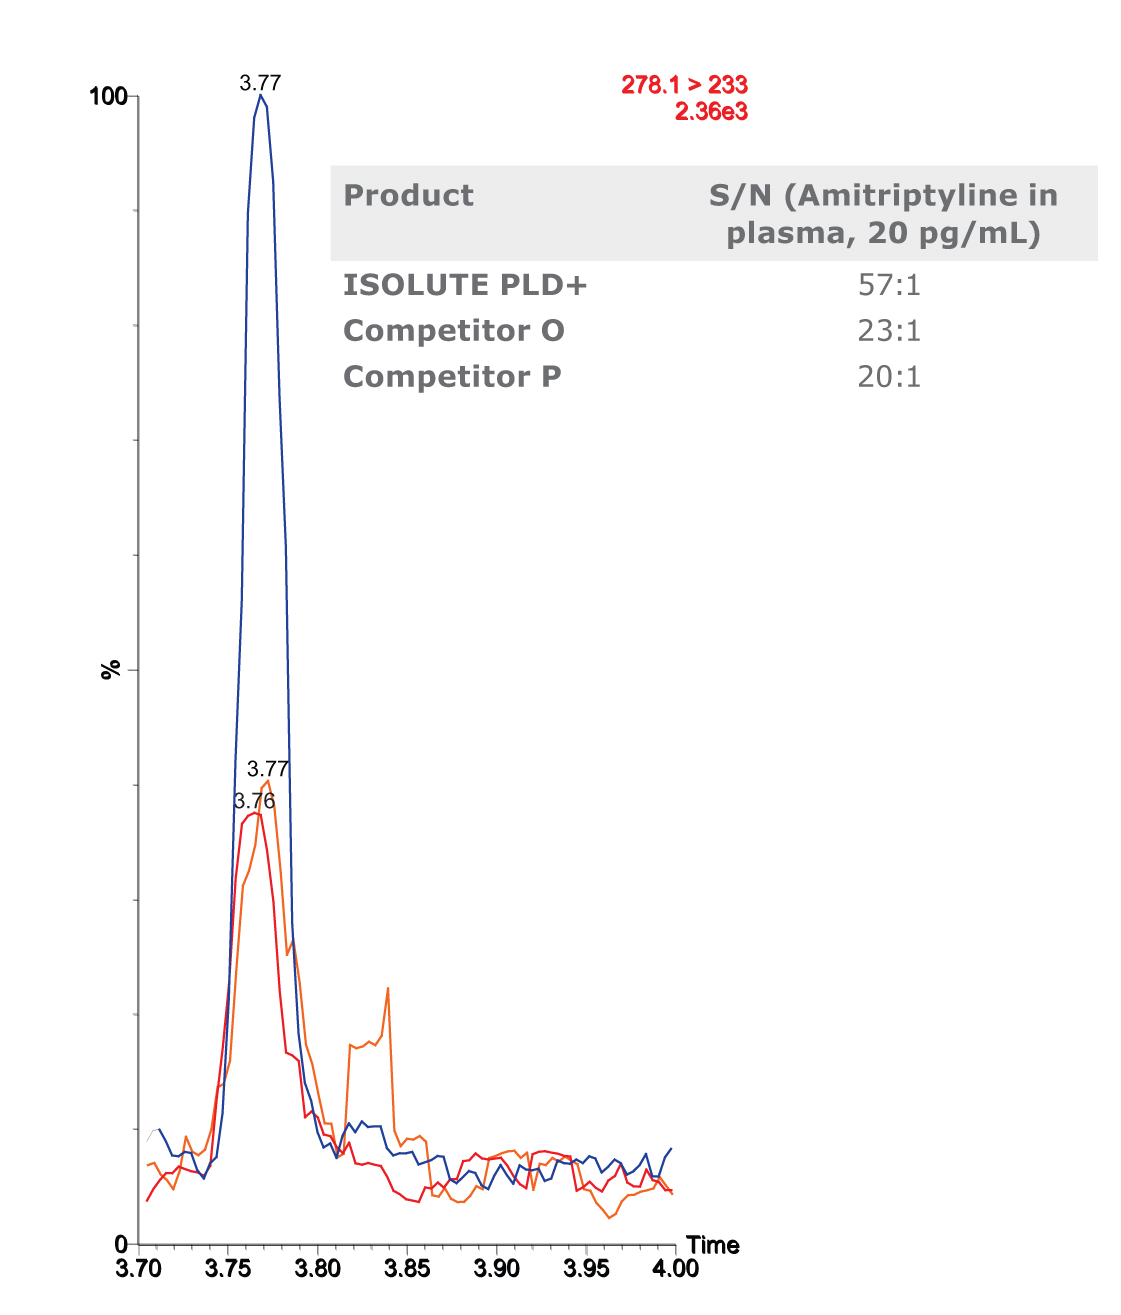 LC-MS trace showing higher sensitivity for PLD+ product compared to competitors